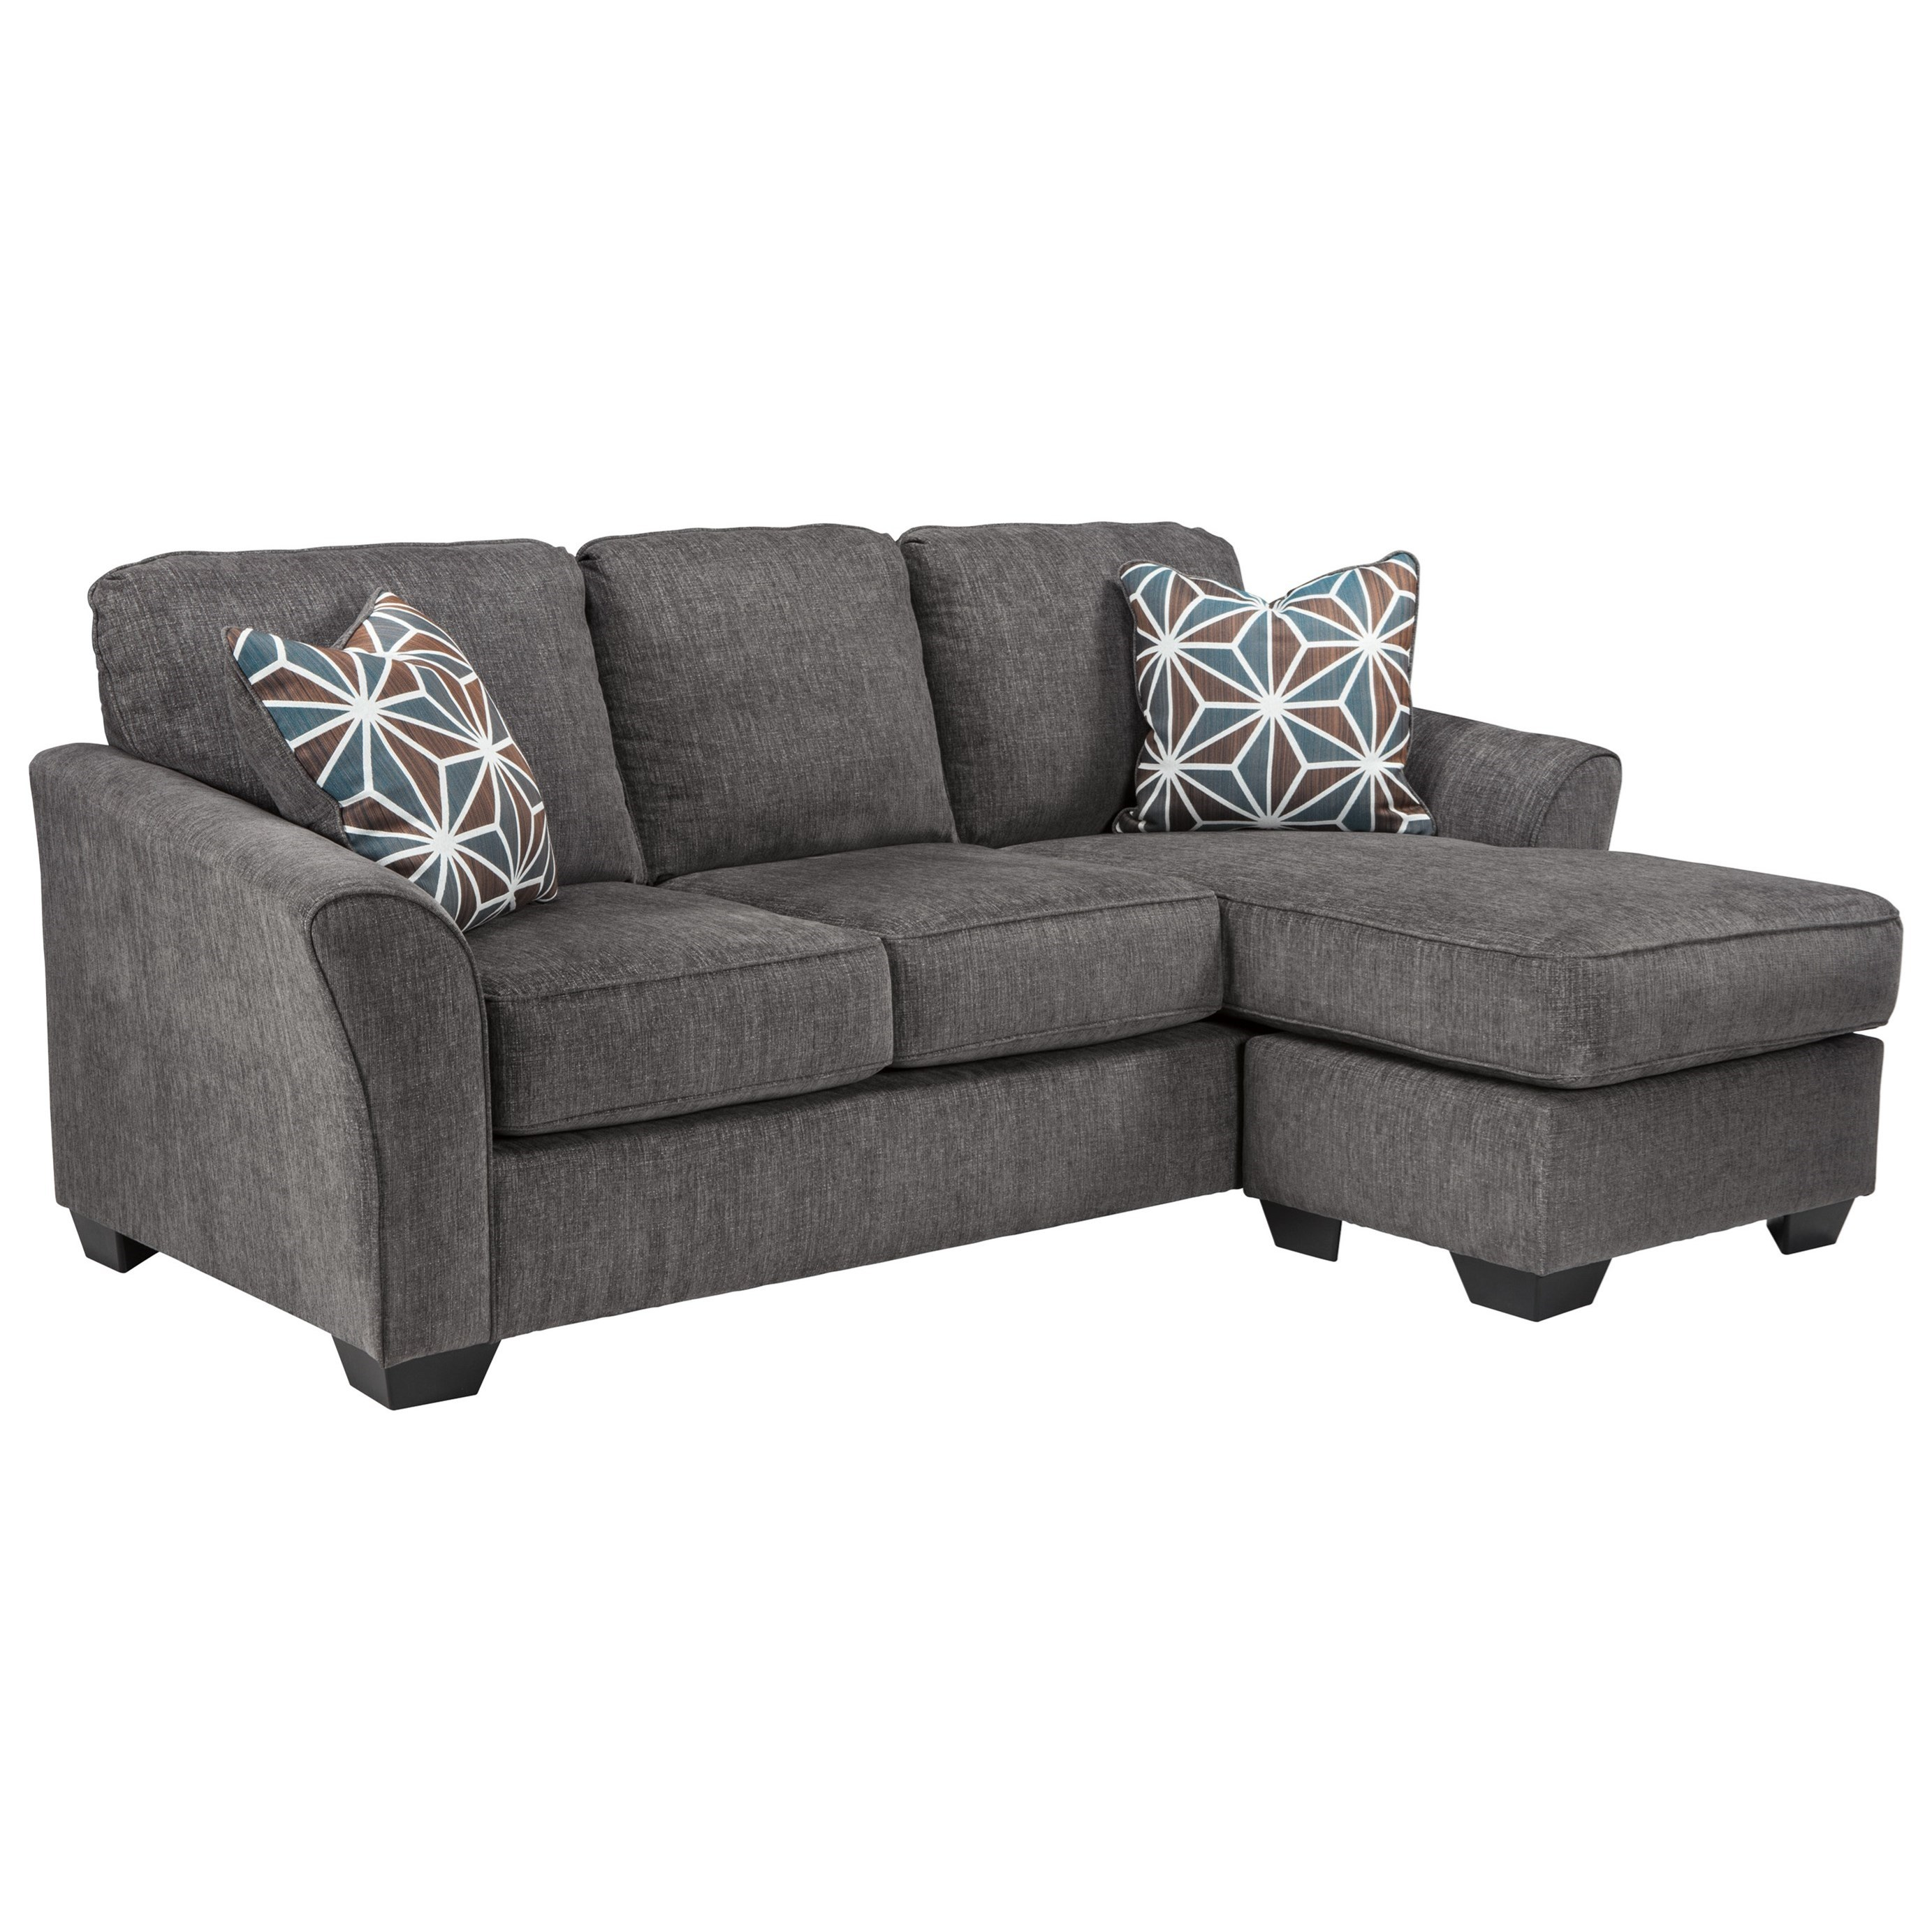 Benchcraft brise 8410268 casual contemporary queen sofa for Casual couch